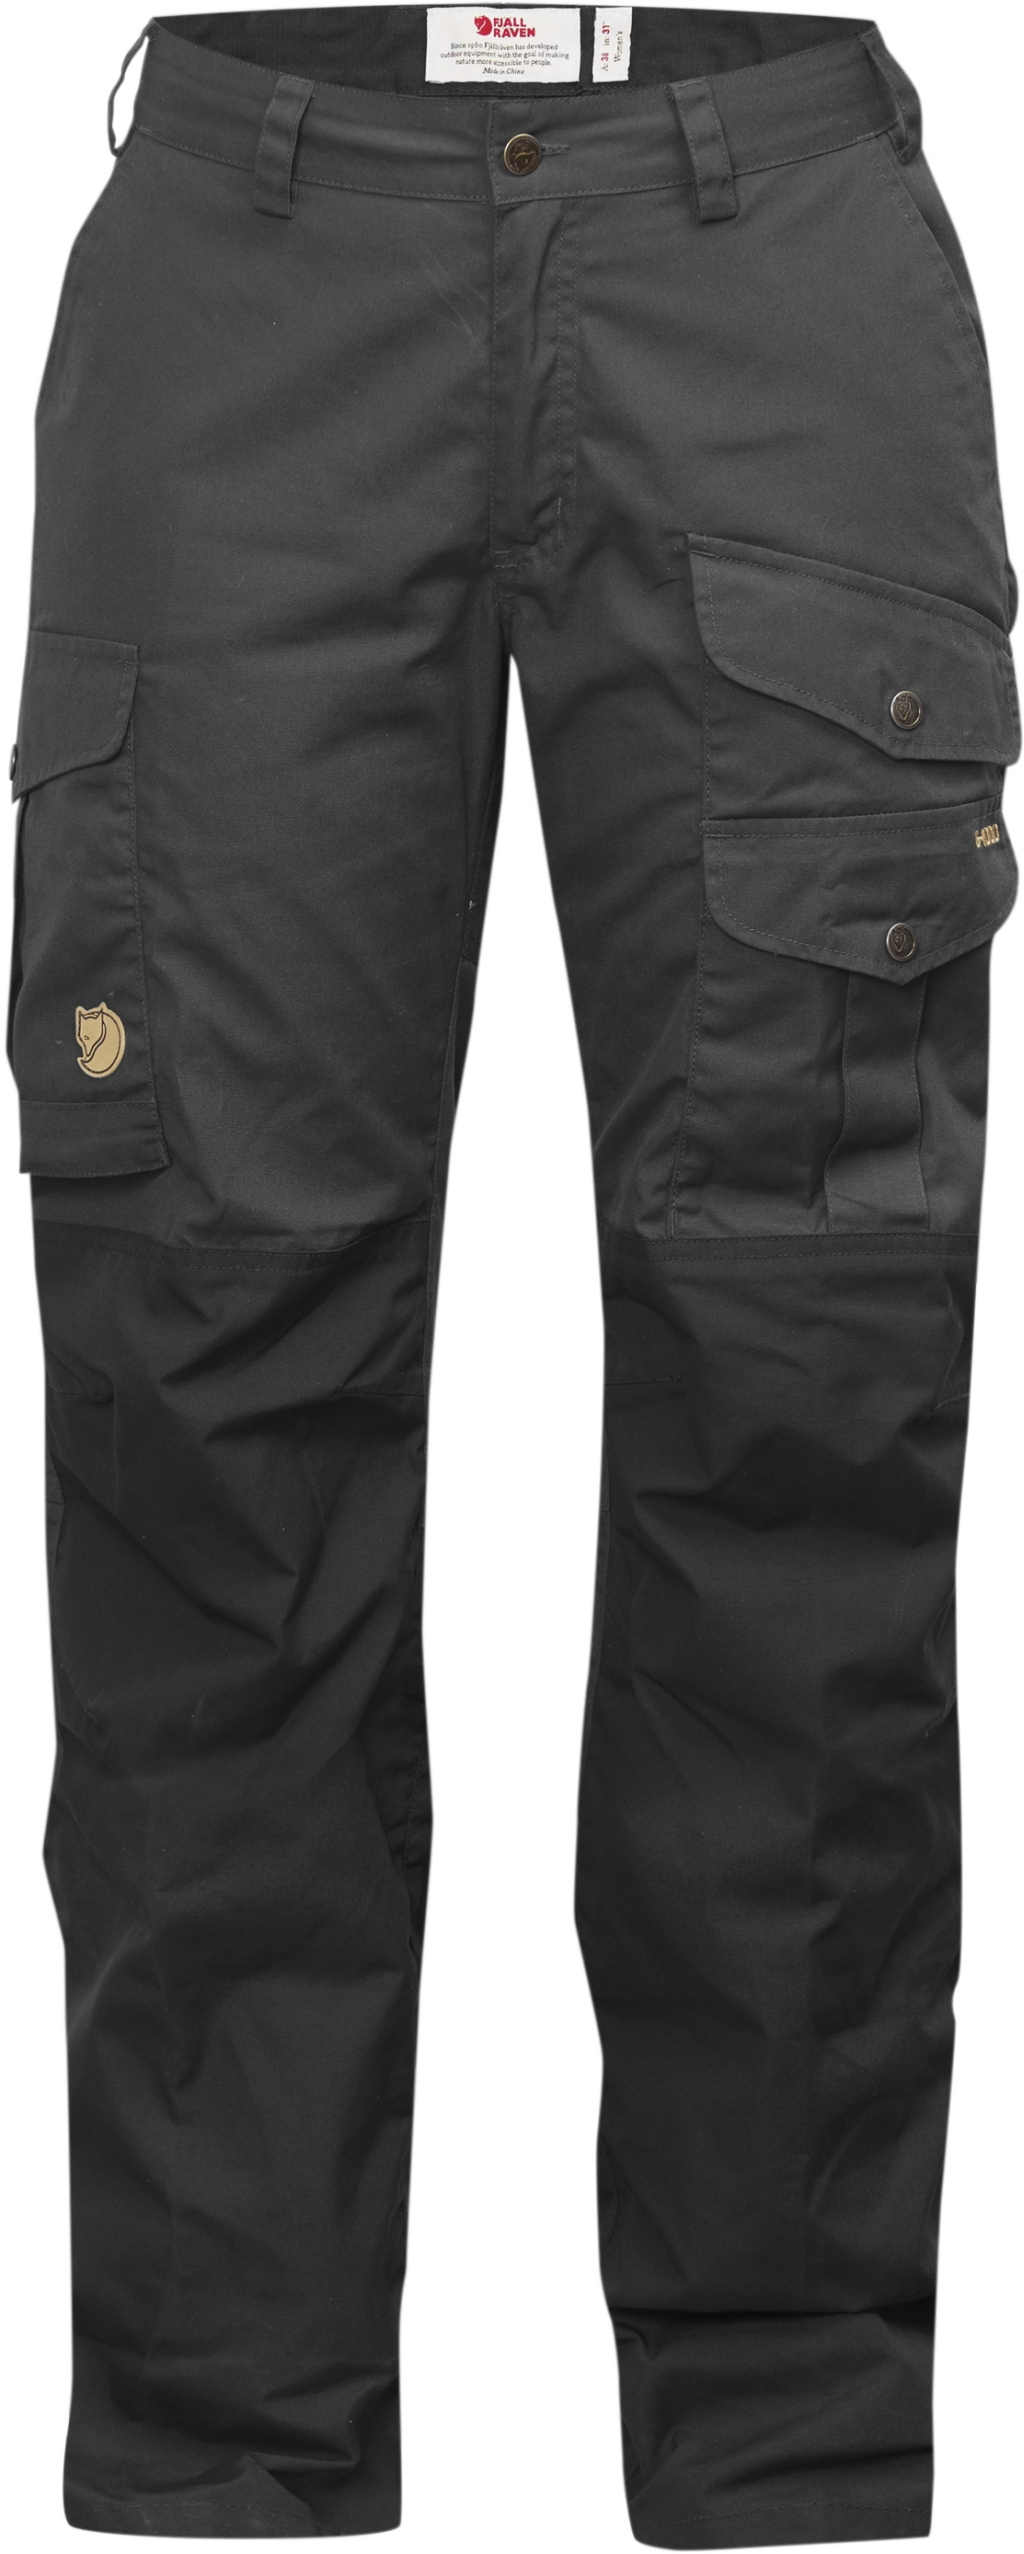 FjallRaven Barents Pro Trousers Curved W Dk Grey-Dk Grey-30